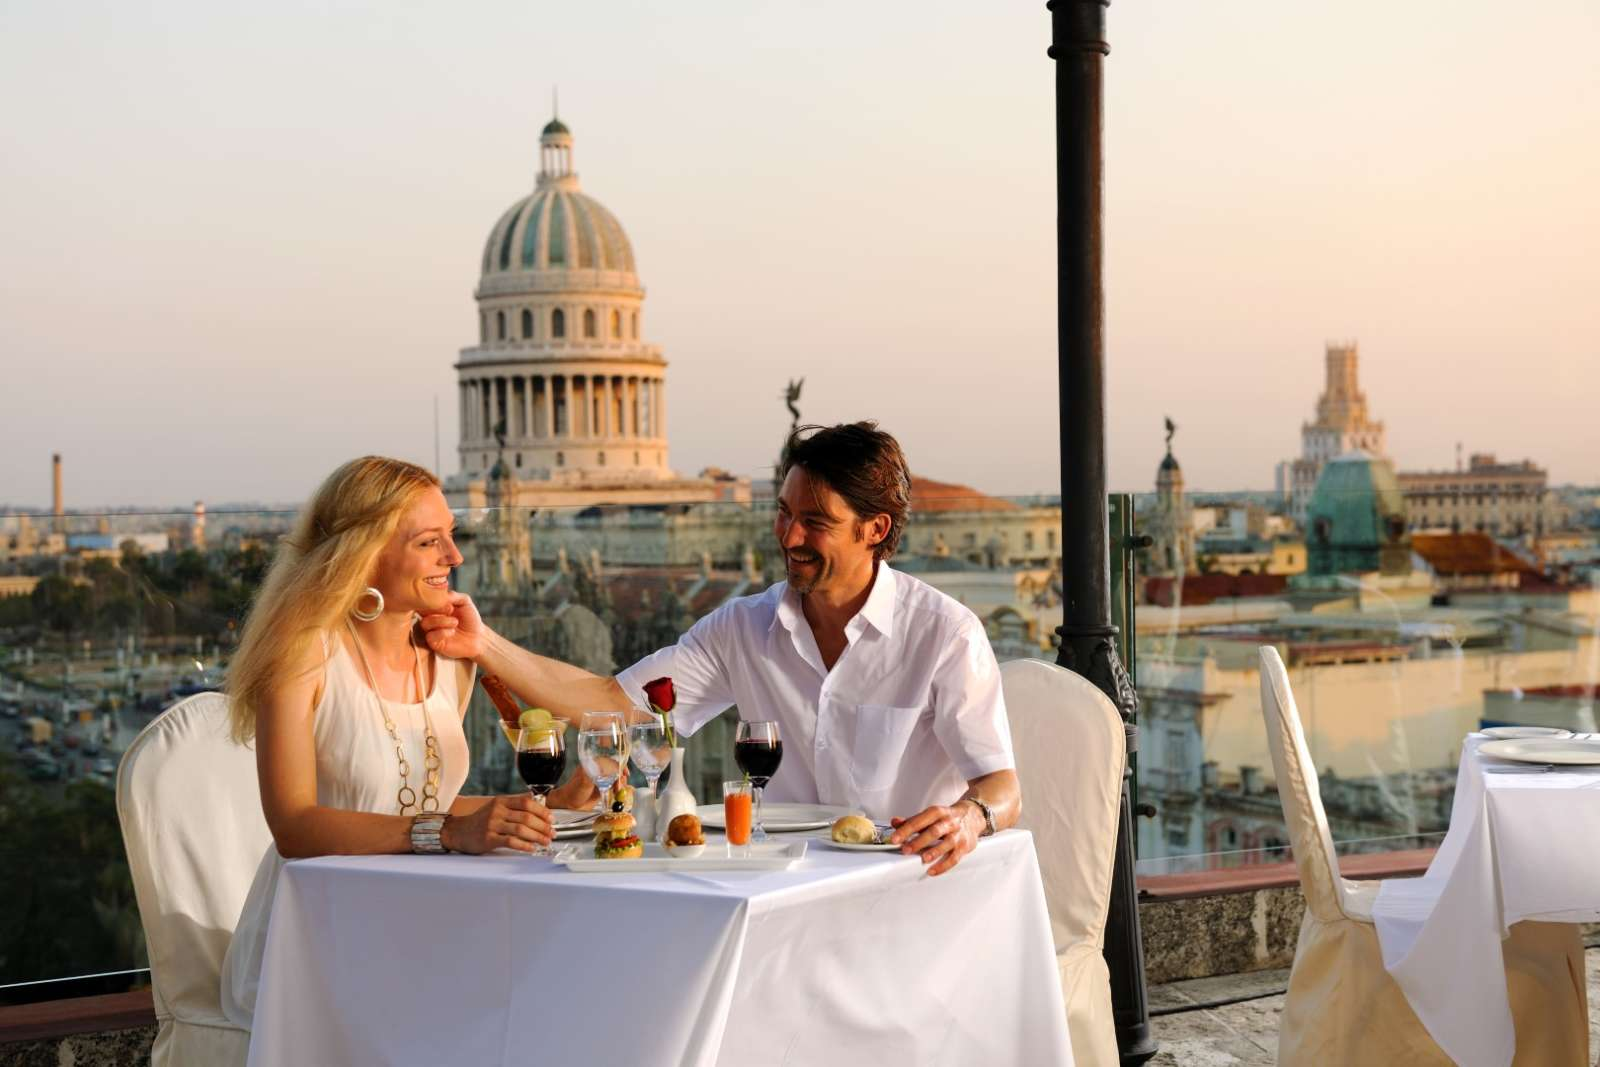 Rooftop dining at the Parque Central hotel in Havana, Cuba